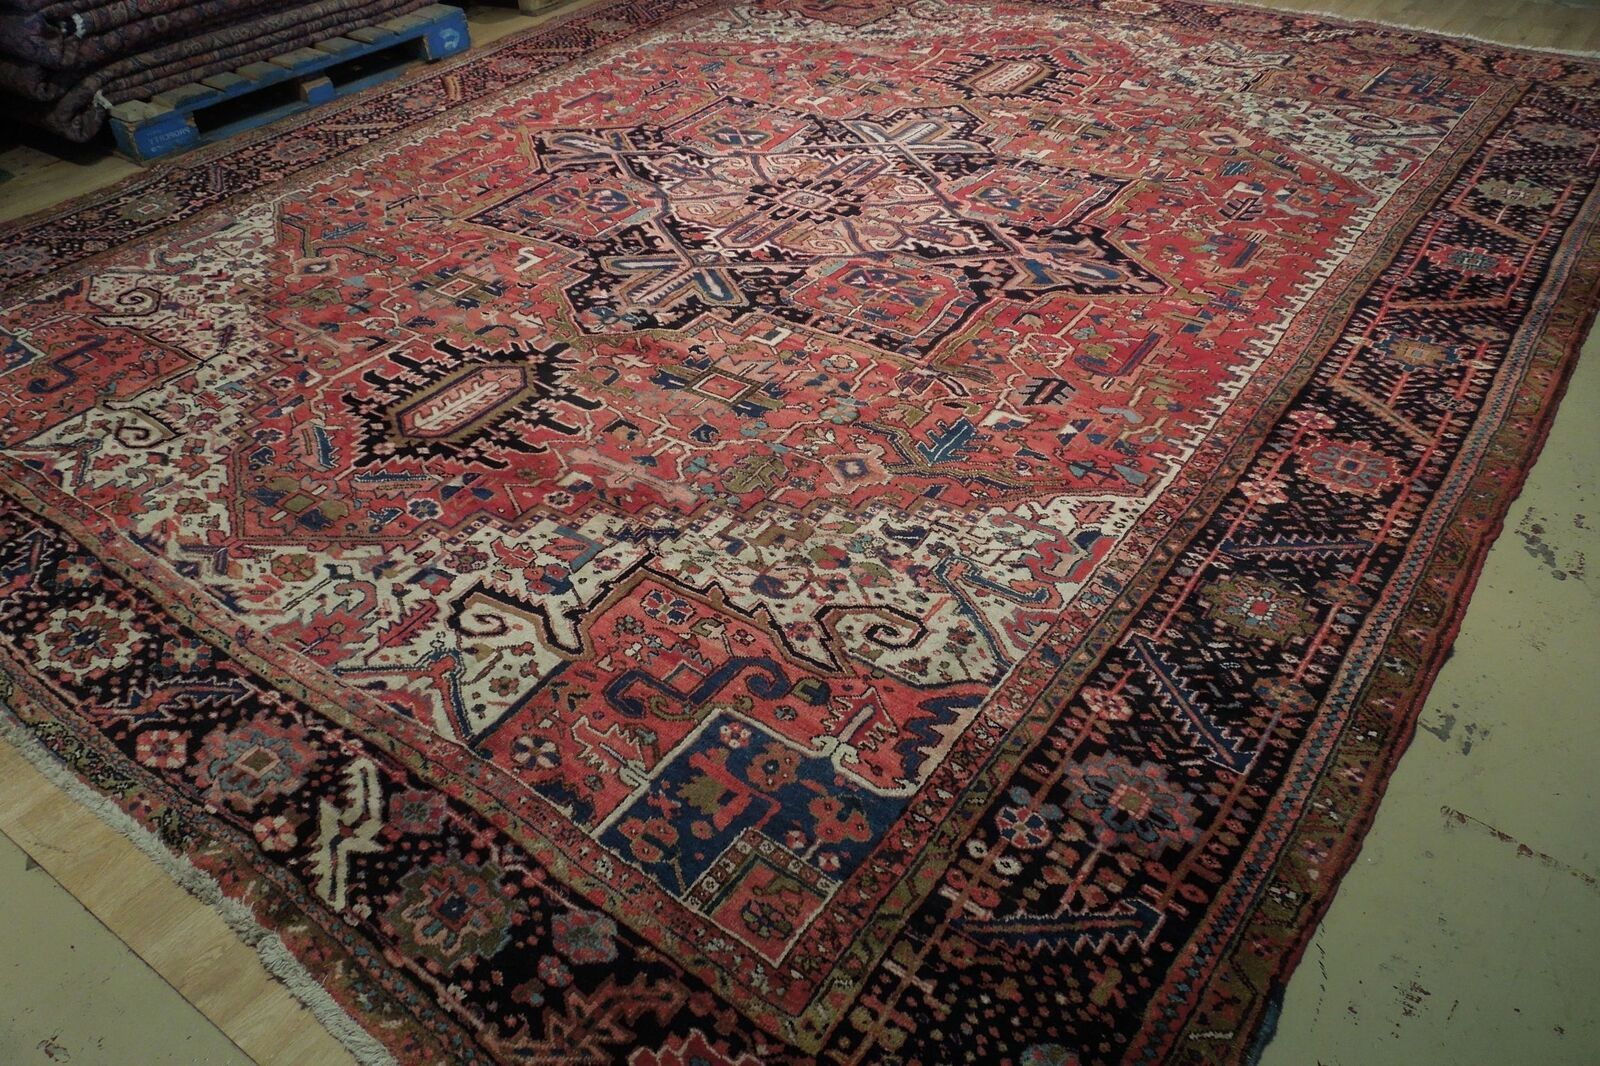 11x14 Semi-Antique Red Heriz Persian Wool Hand-Knotted Rug